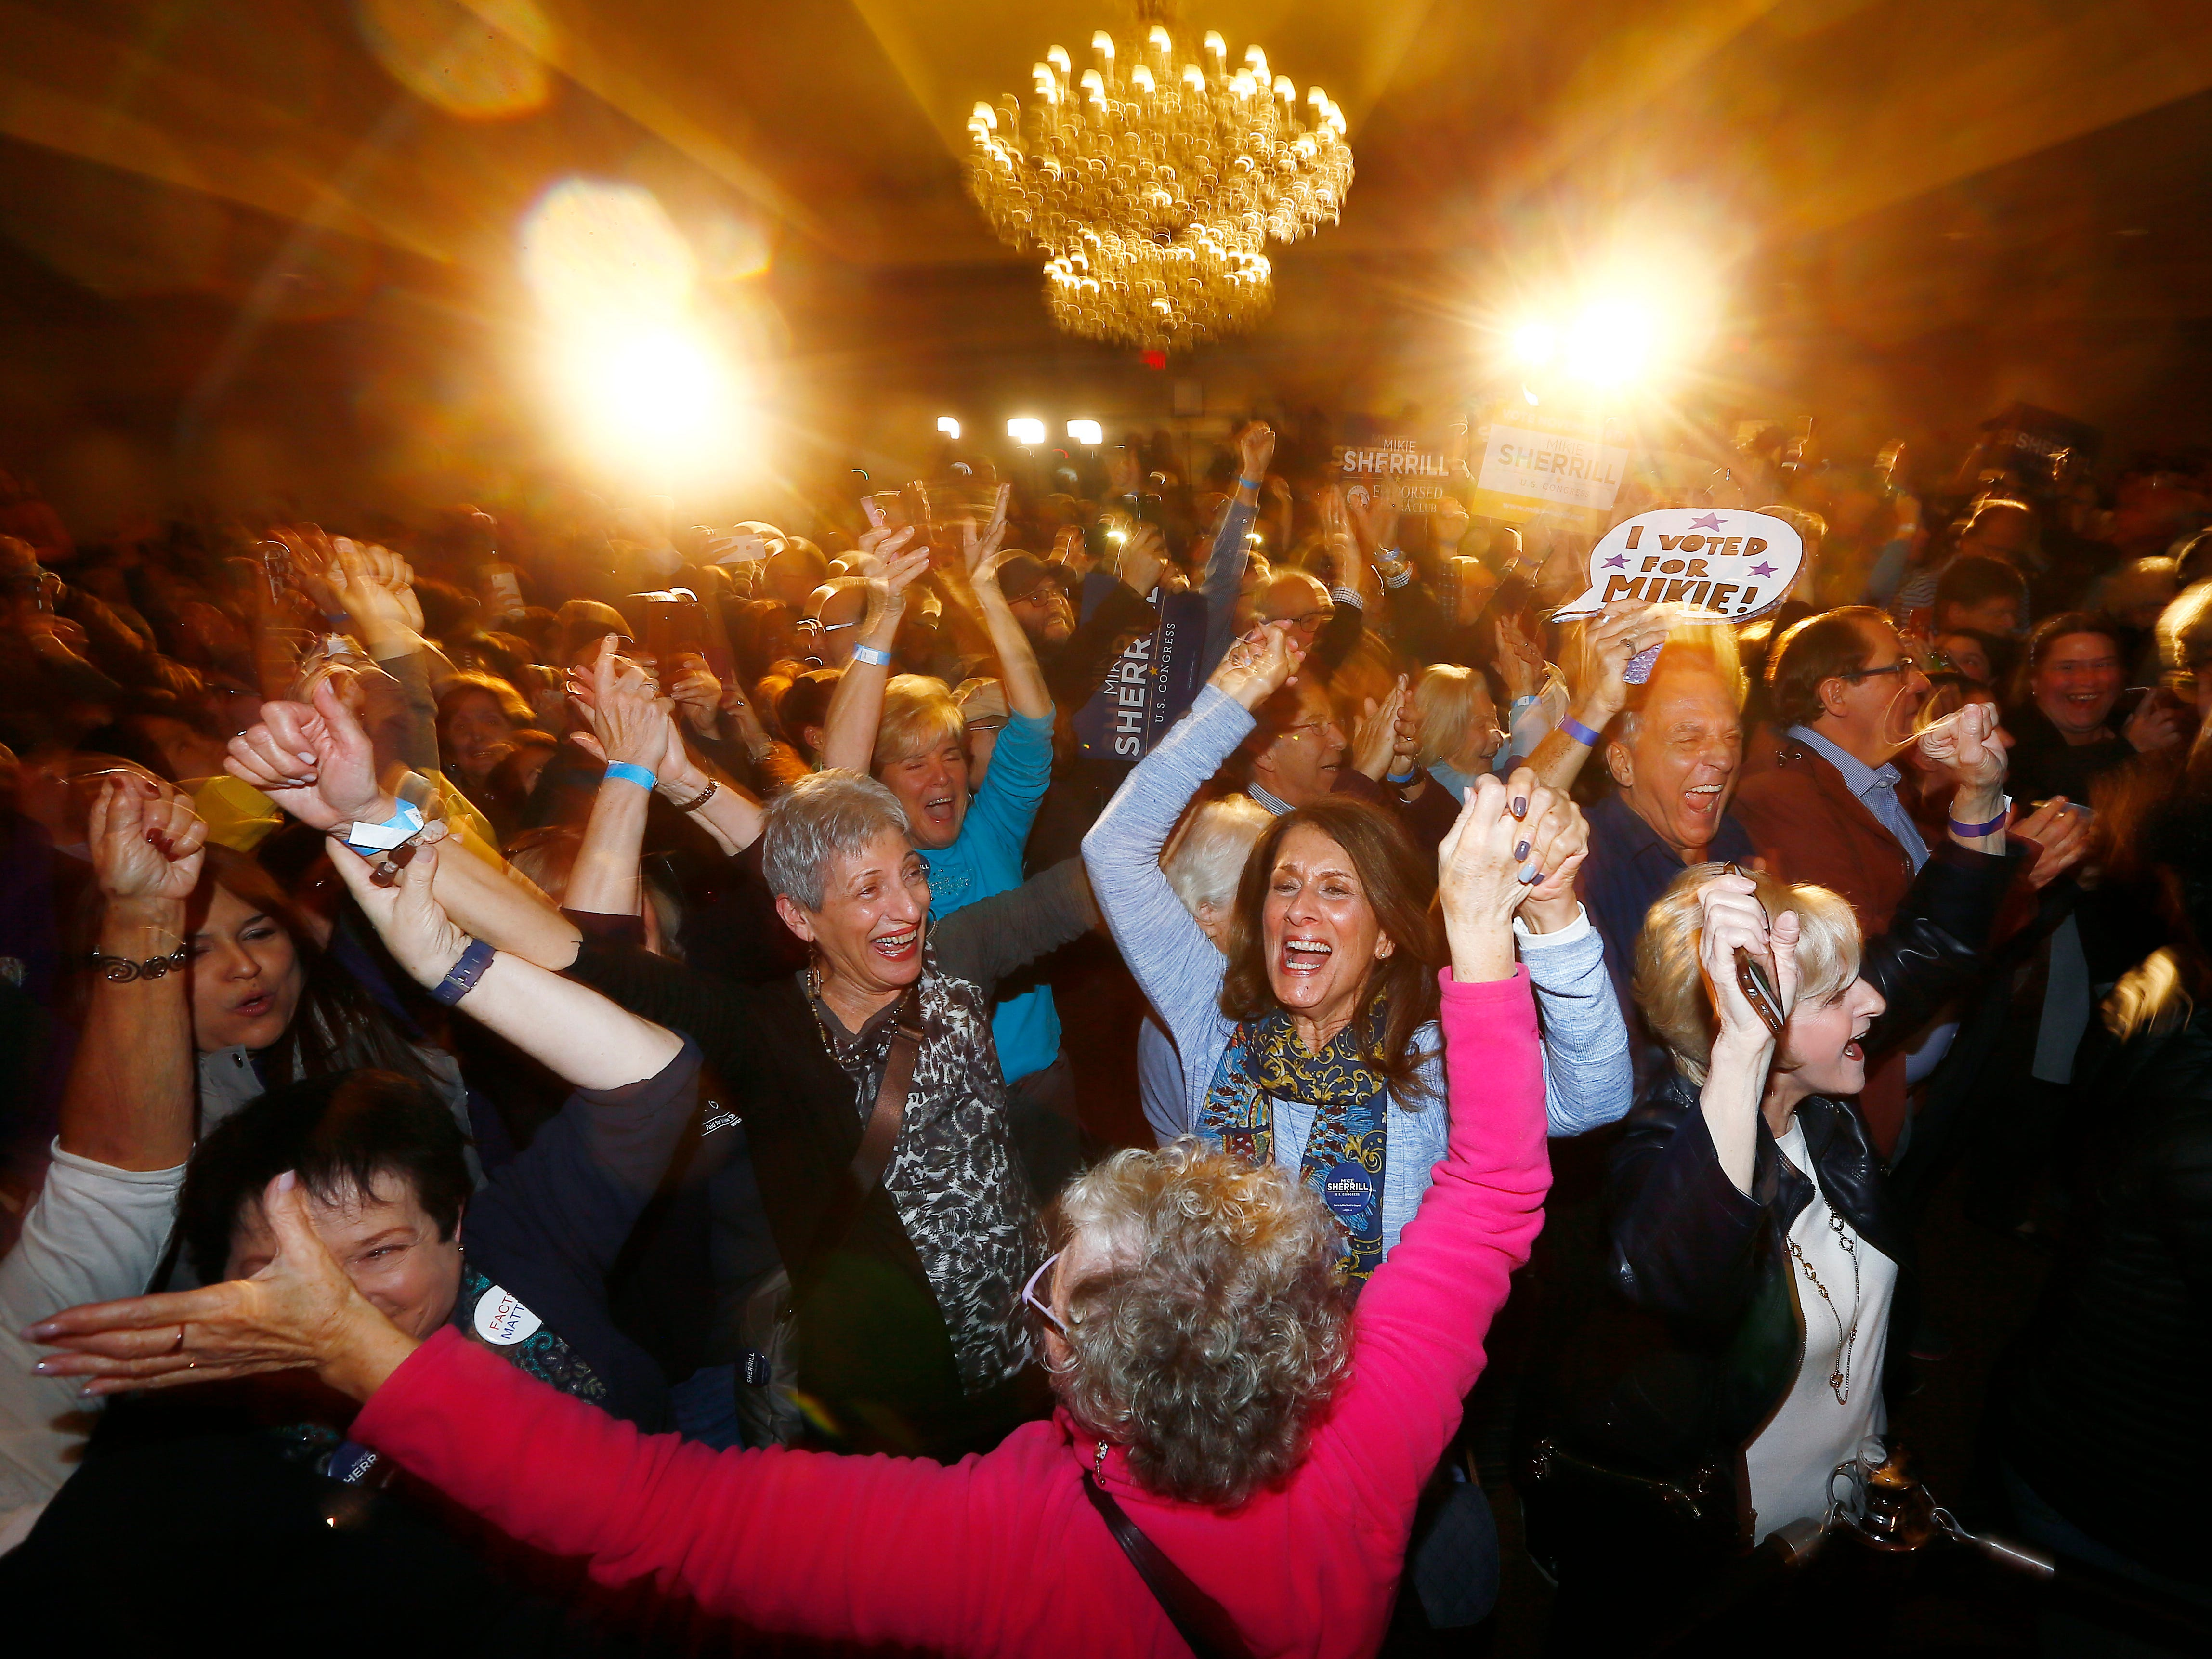 Supporters of Mikie Sherrill explode into cheers as CNN names her the winner for the NJ 11th Congress seat at the Parsippany Sheraton. The Naval Academy graduate, Navy Pilot and former federal prosecutor was running for Rodney Frelinghuysen's seat in the NJ 11th district. November 6, 2018, Parsippany, NJ